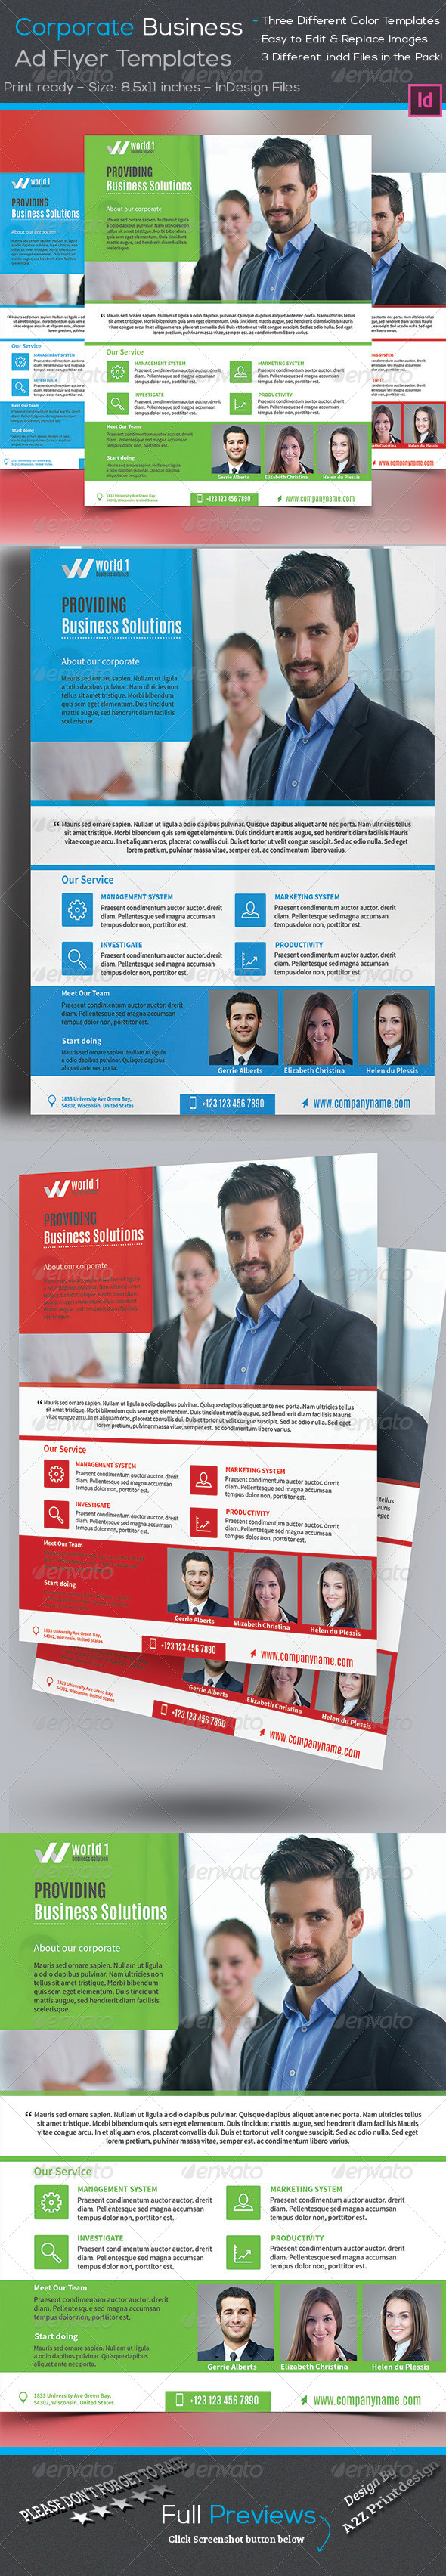 GraphicRiver Corporate Business Flyer 8042083